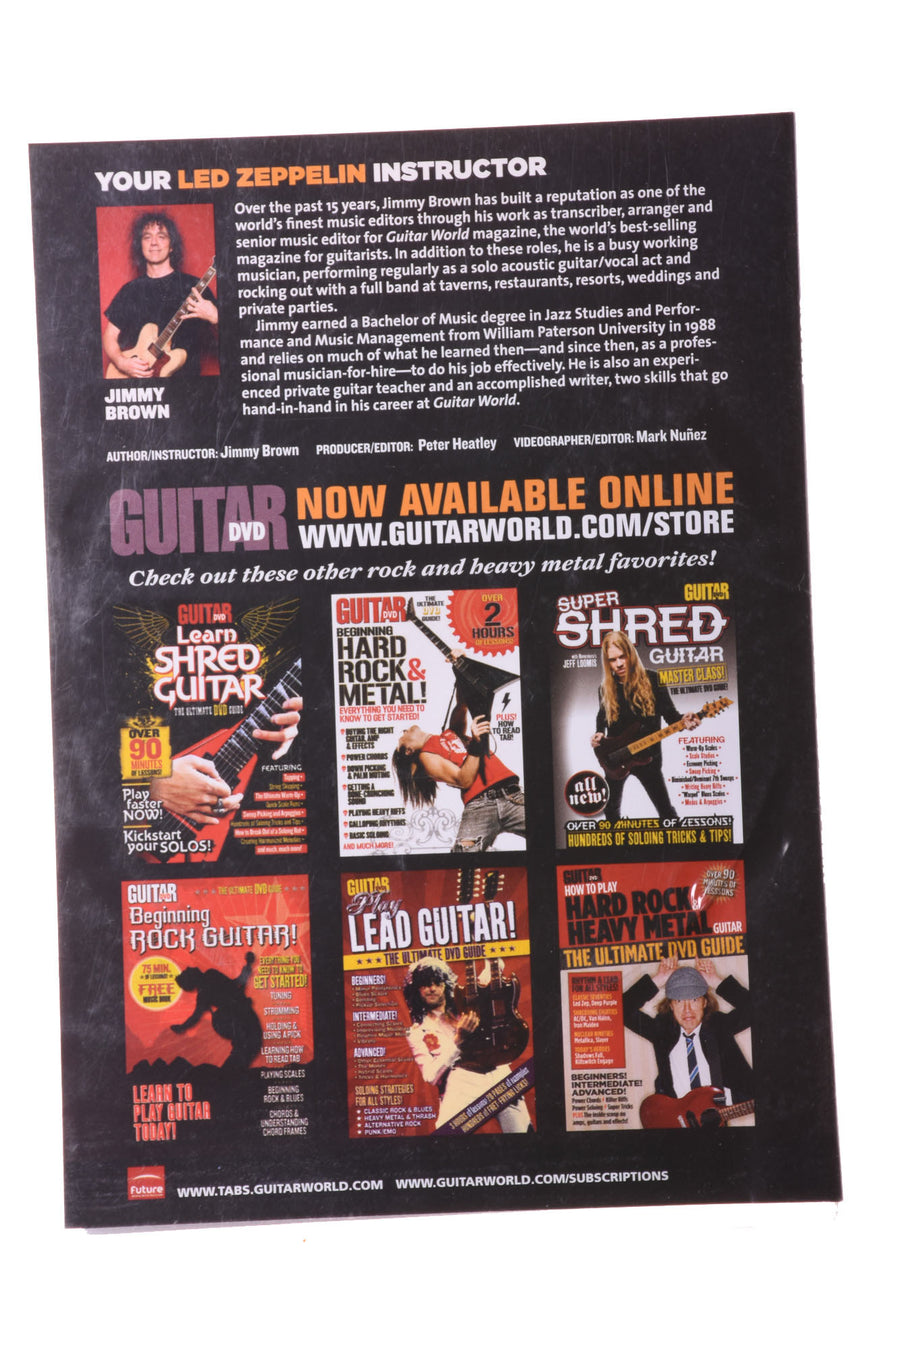 DVD Guide for Guitar By Future